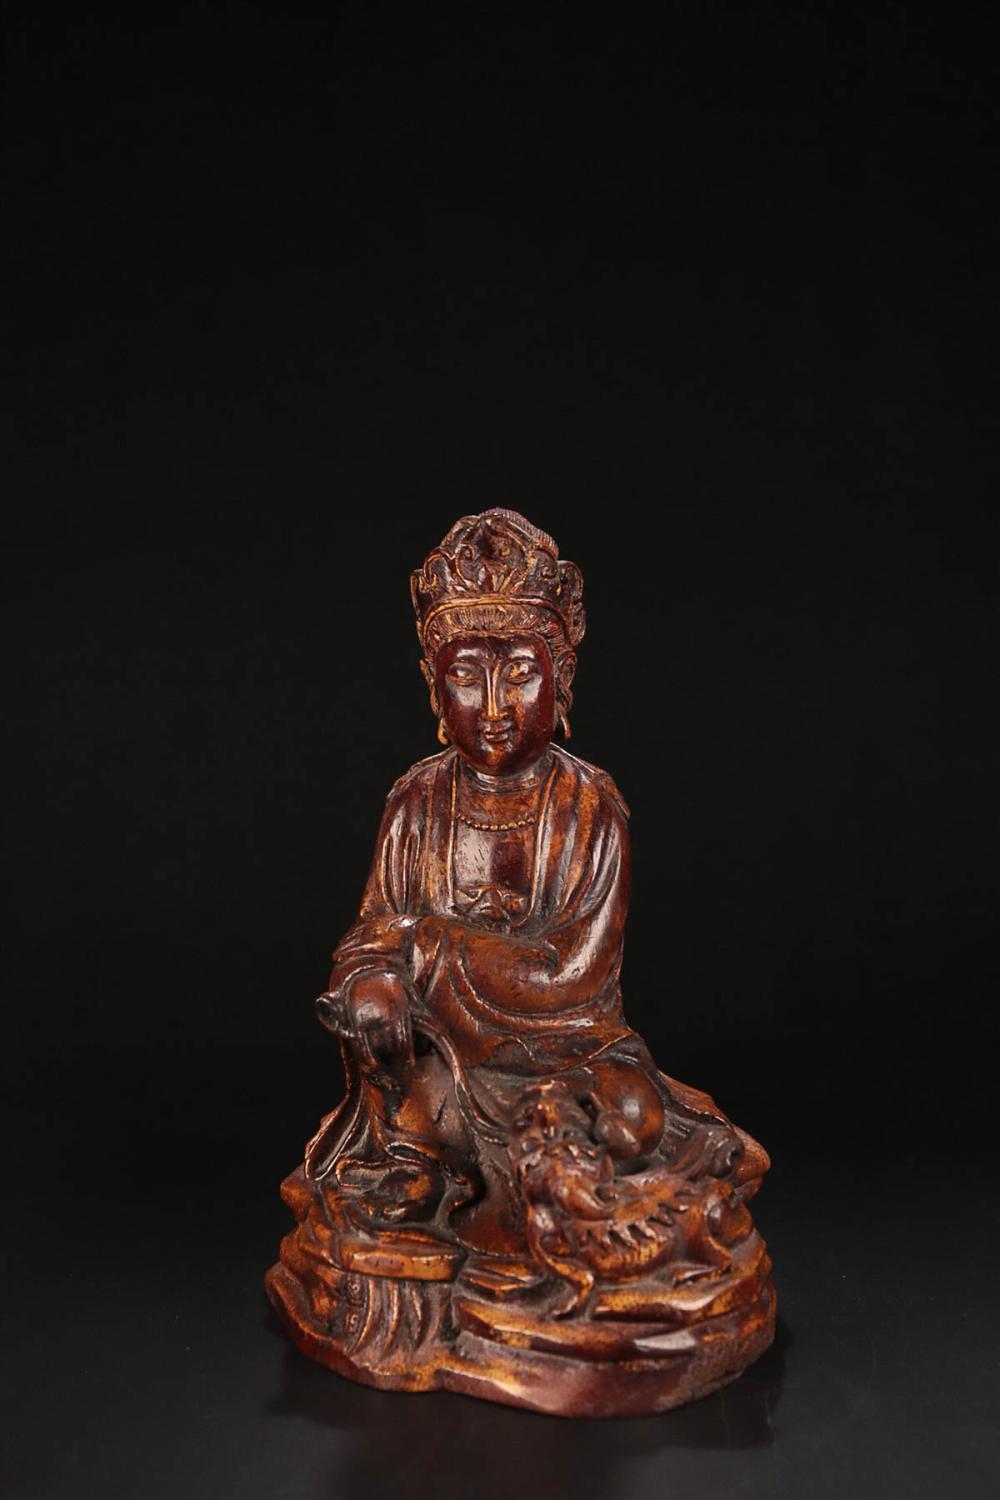 17-19TH CENTURY, A GUAN YIN DESIGN OLD BAMBOO ORNAMENT, QING DYNASTY